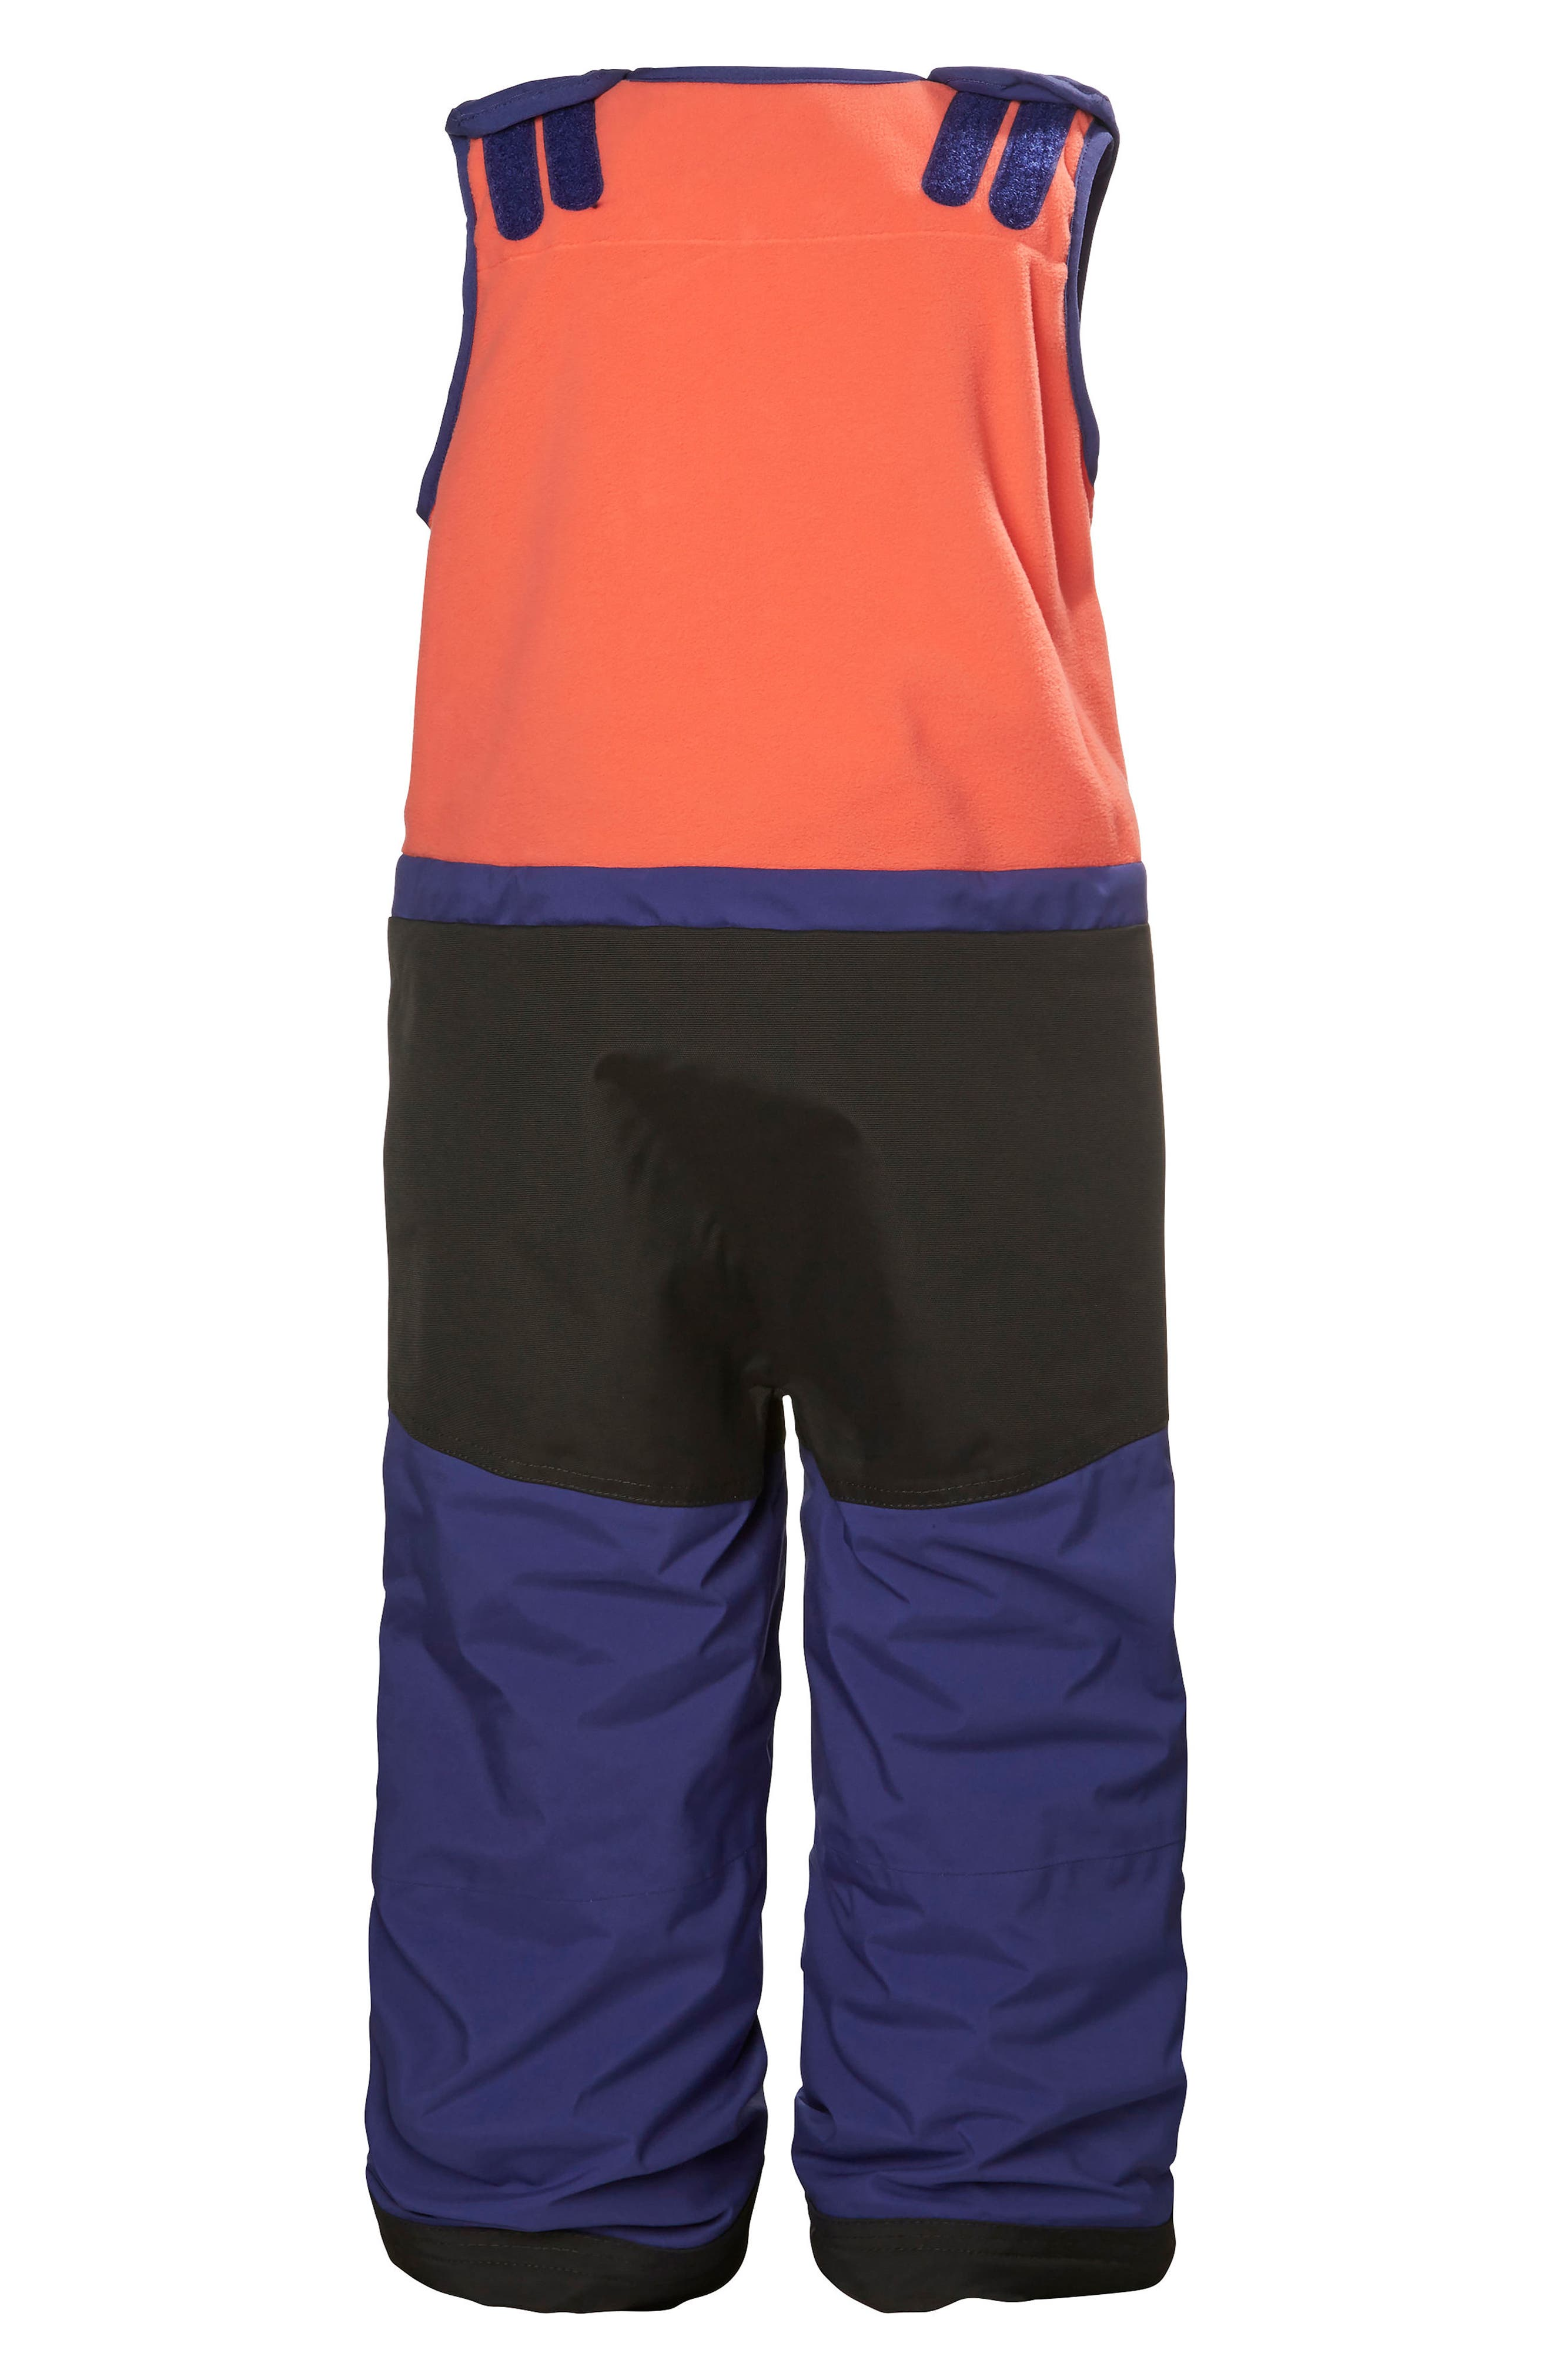 'K Powder' Insulated Bib,                             Main thumbnail 1, color,                             548